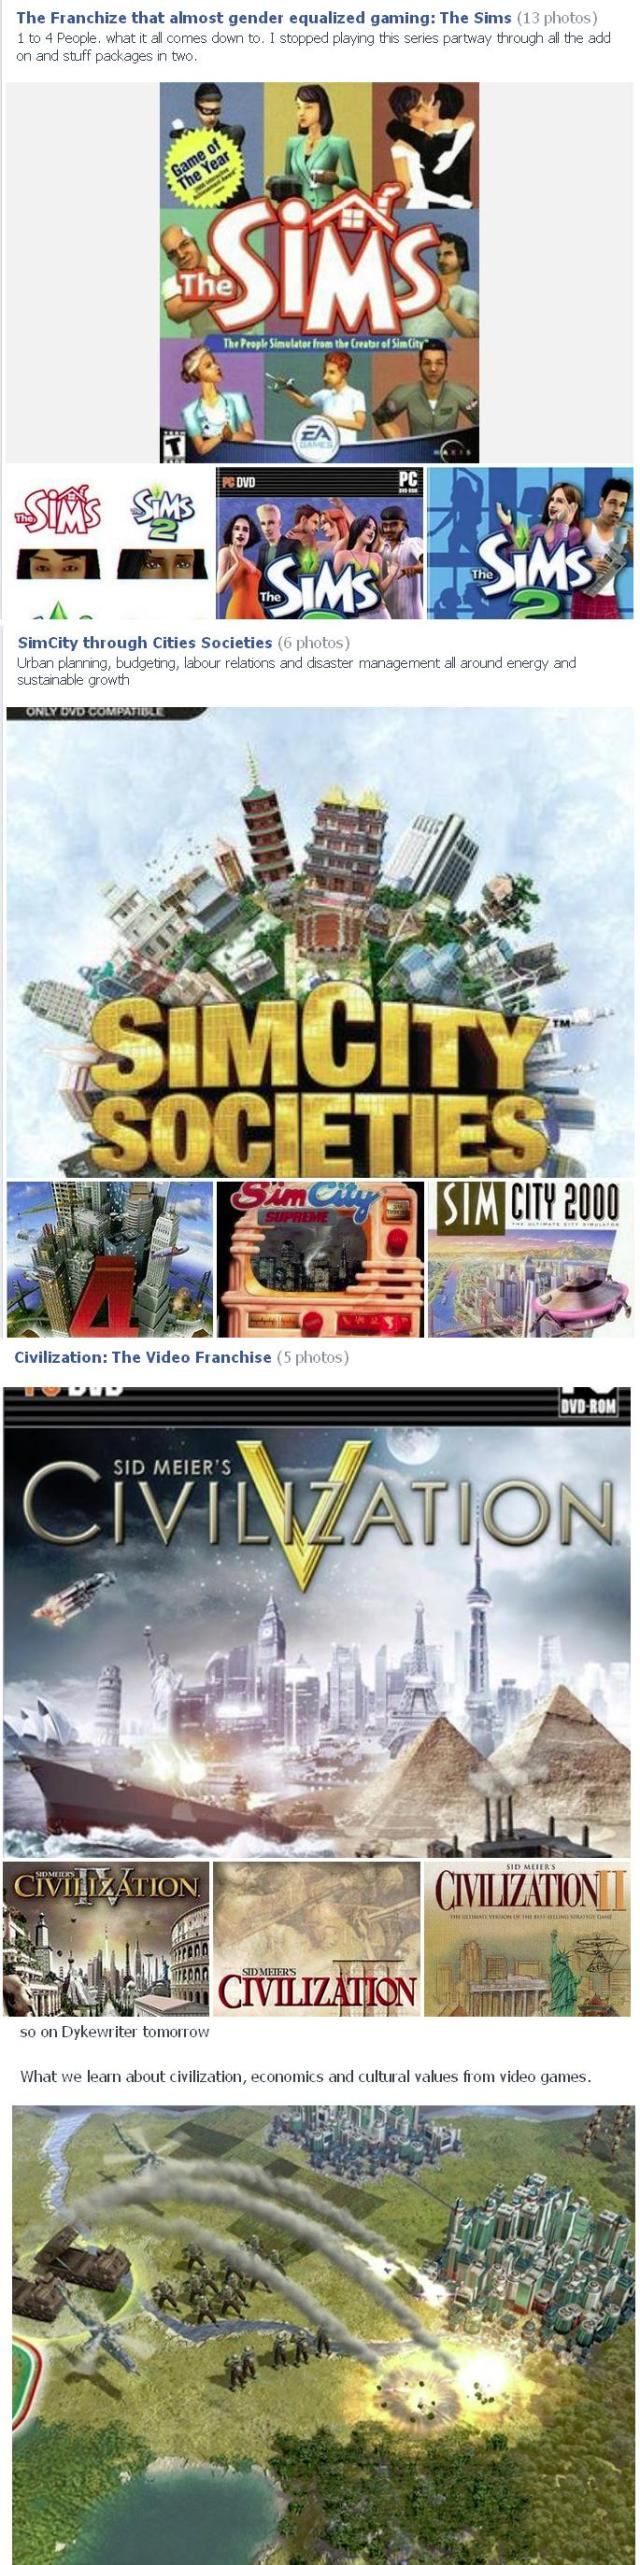 people cities society civilization